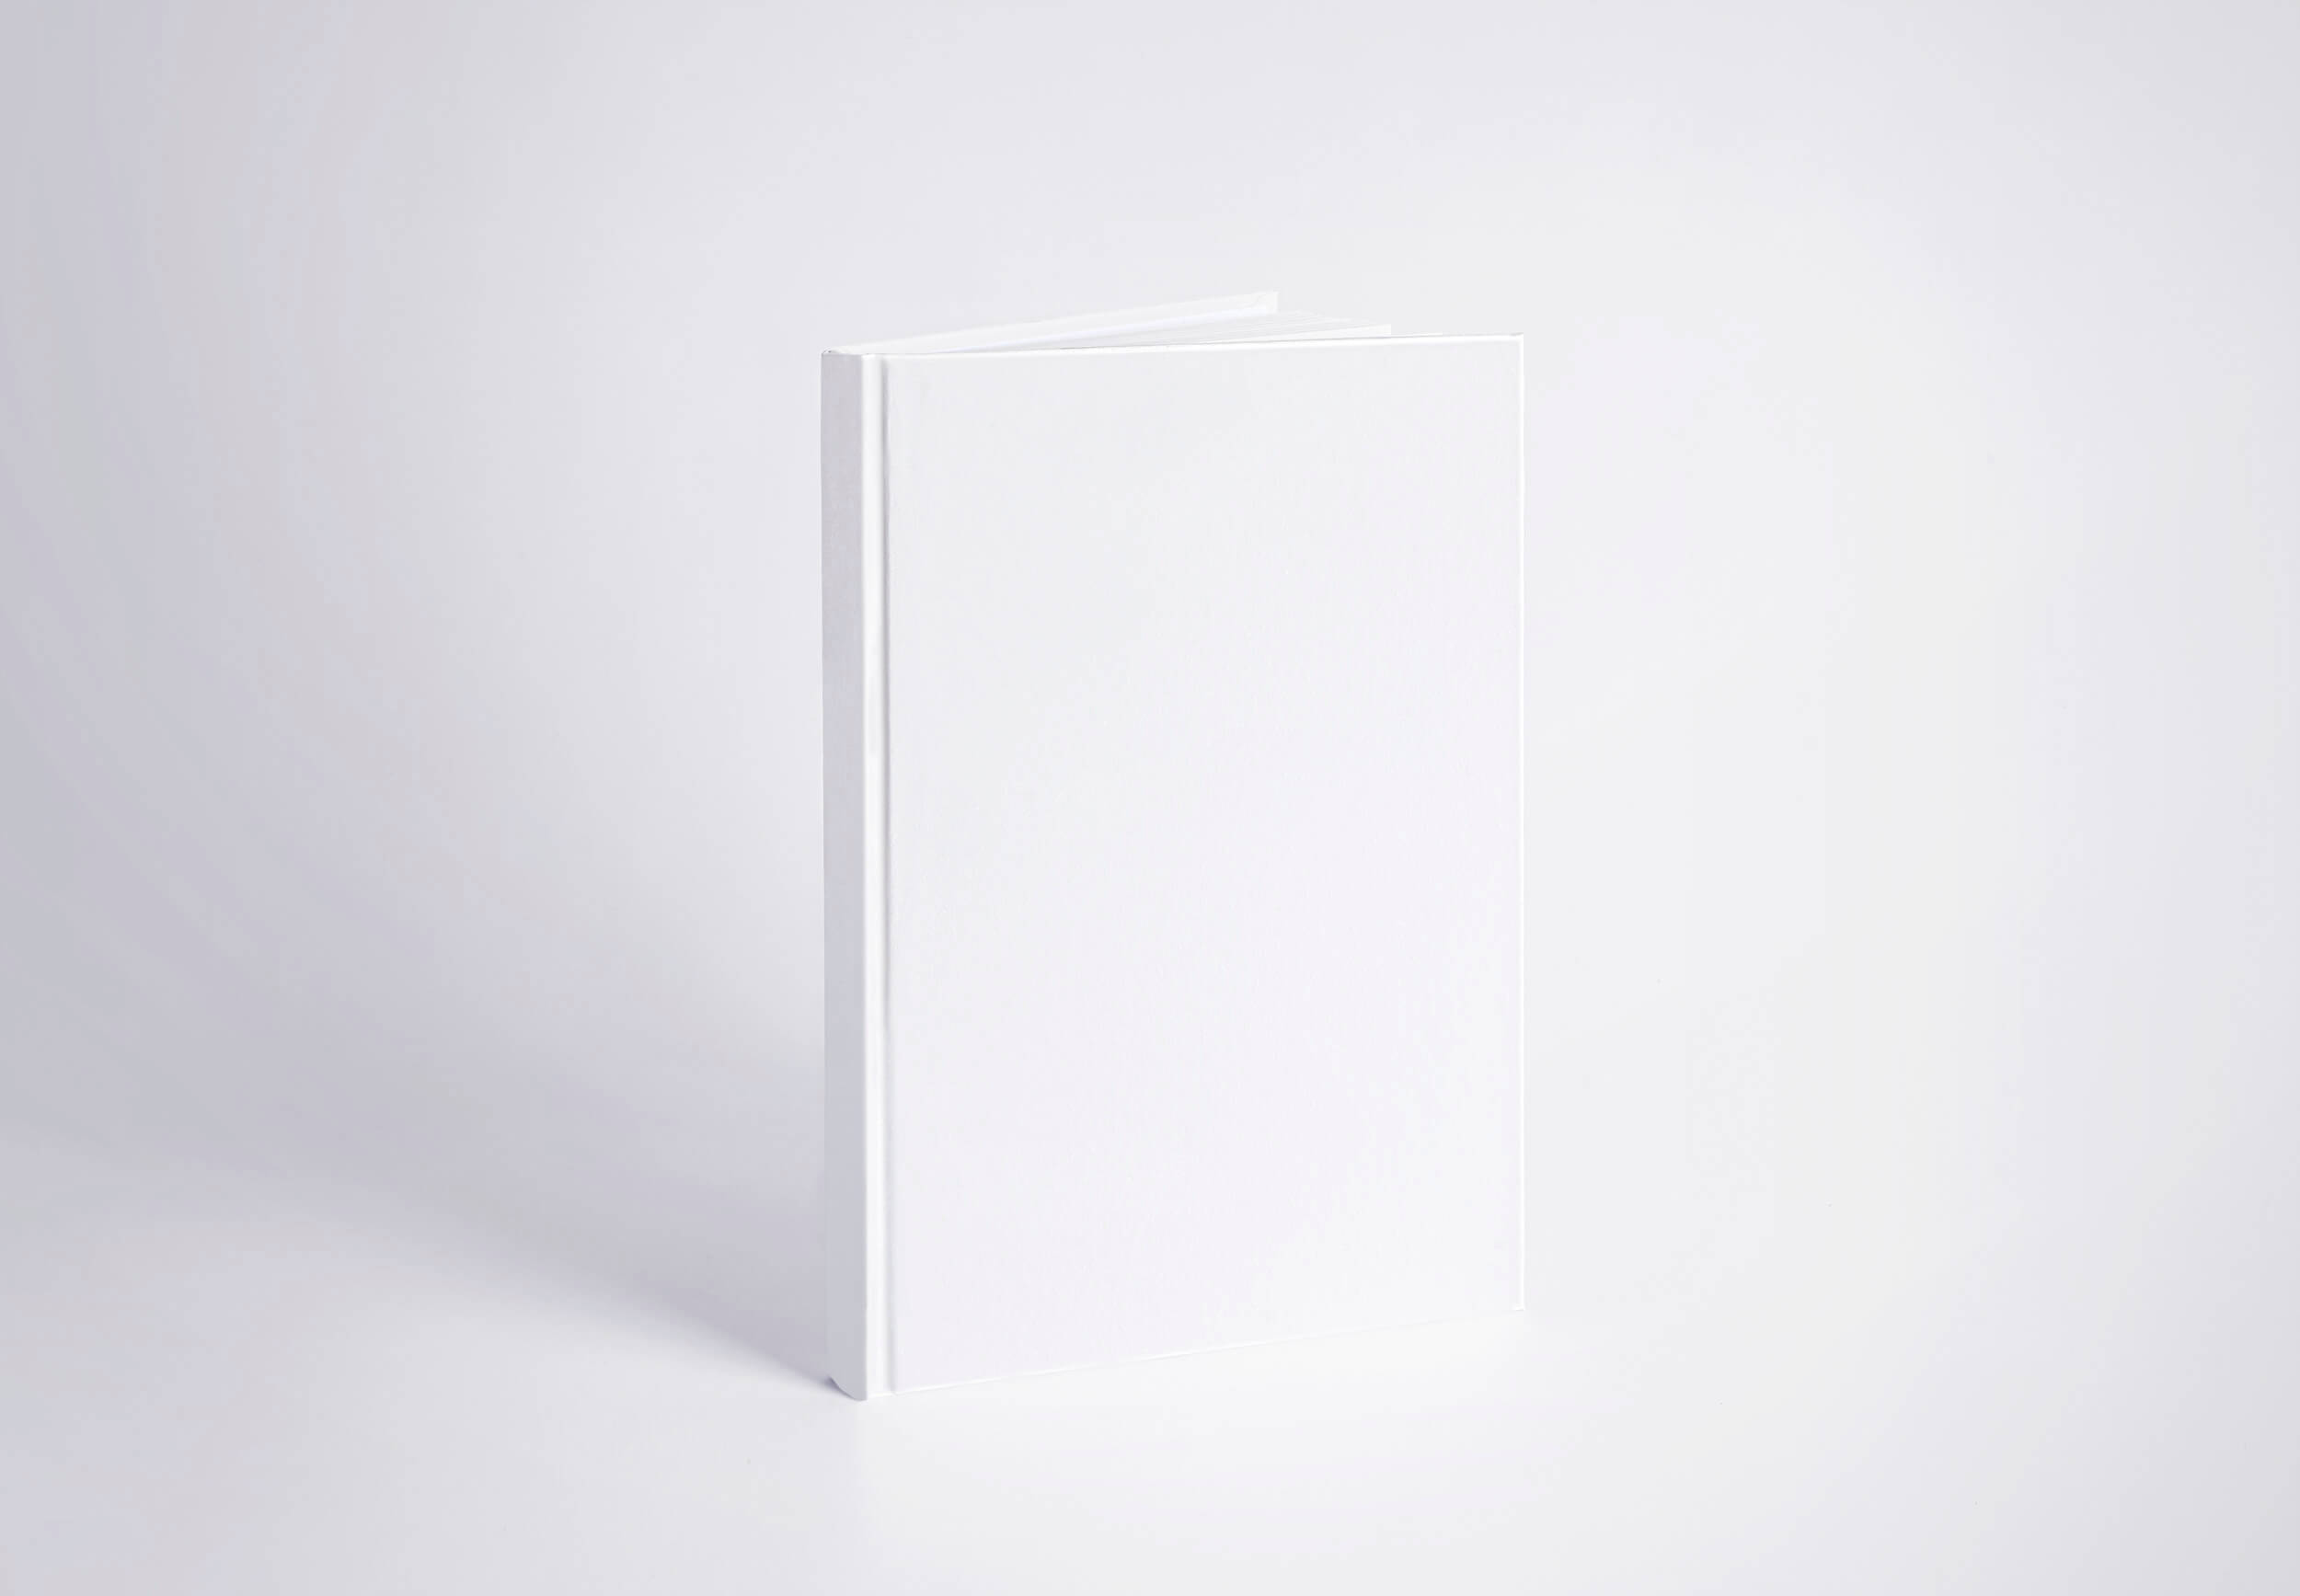 Free Book Mockup for Photoshop